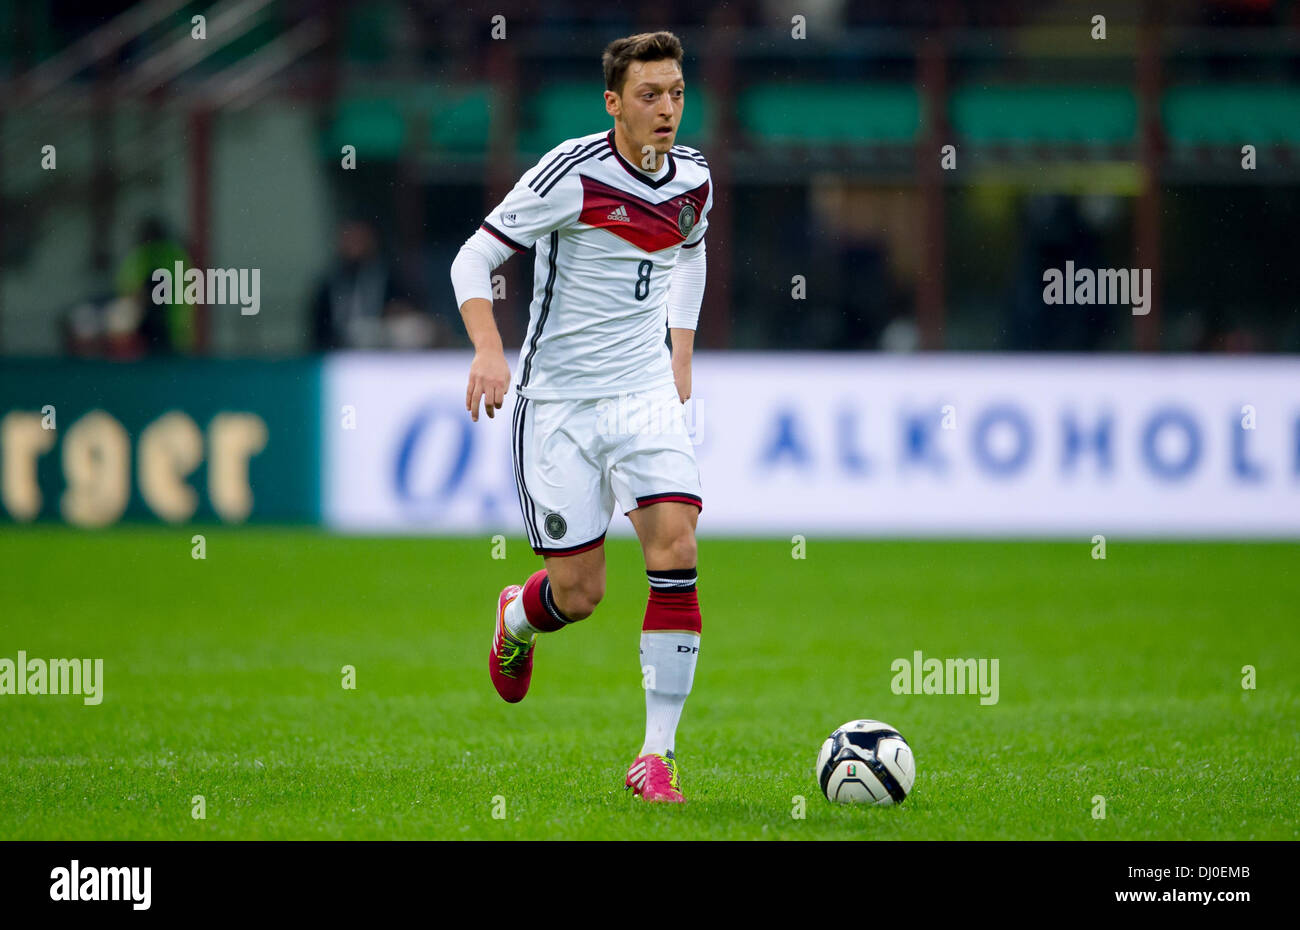 Milan, Italy. 15th Nov, 2013. Germany's Mesut Oezil plays the ball during the friendly soccer match between Italy Stock Photo